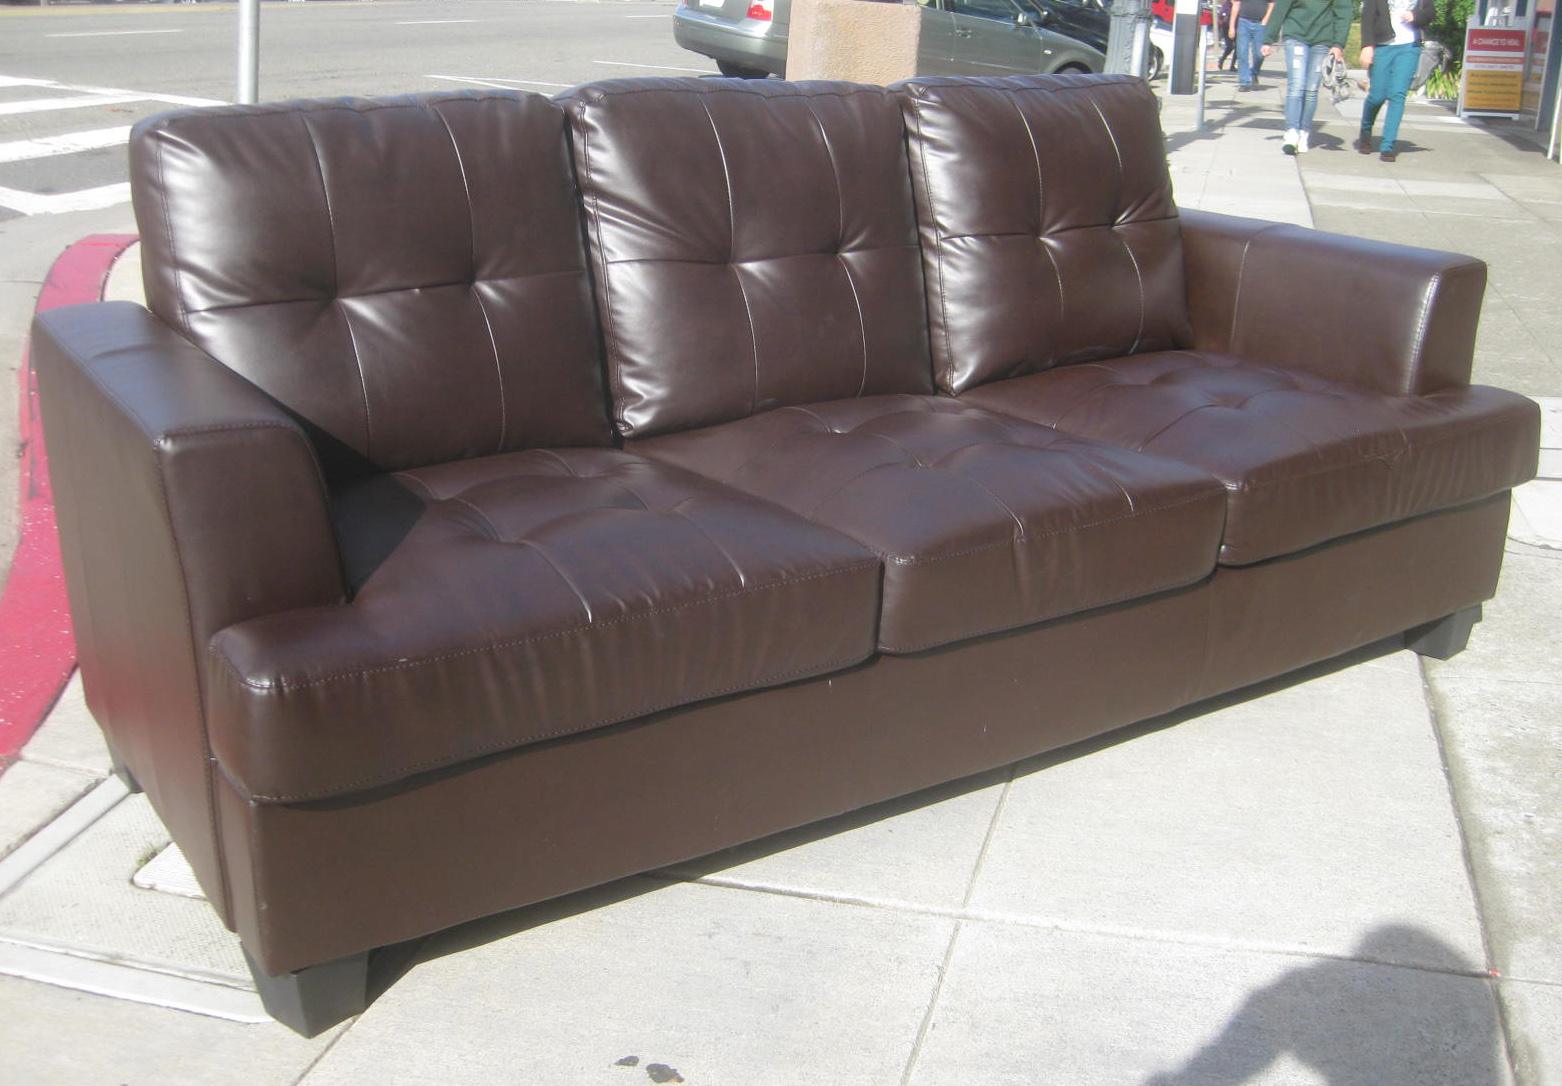 gets flaky full davis couch durablend expert refund for consumer with faux customer pleather furniture amy